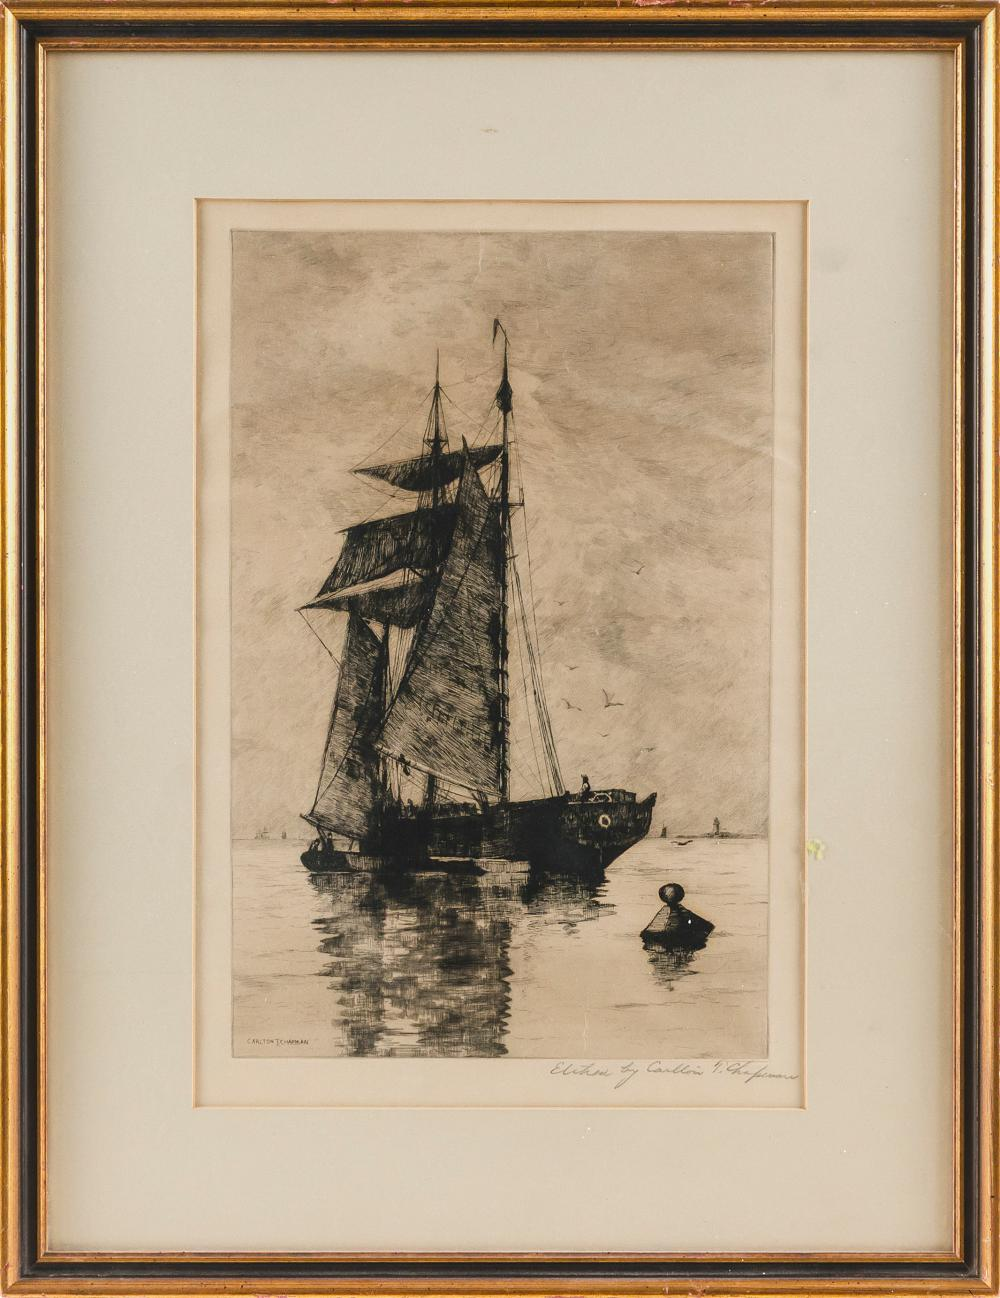 """CARLTON THEODORE CHAPMAN, New York/California/Ohio, 1860-1925, A moored vessel., Etching on paper, 14.75"""" x 9.75"""" sight. Framed 21""""..."""